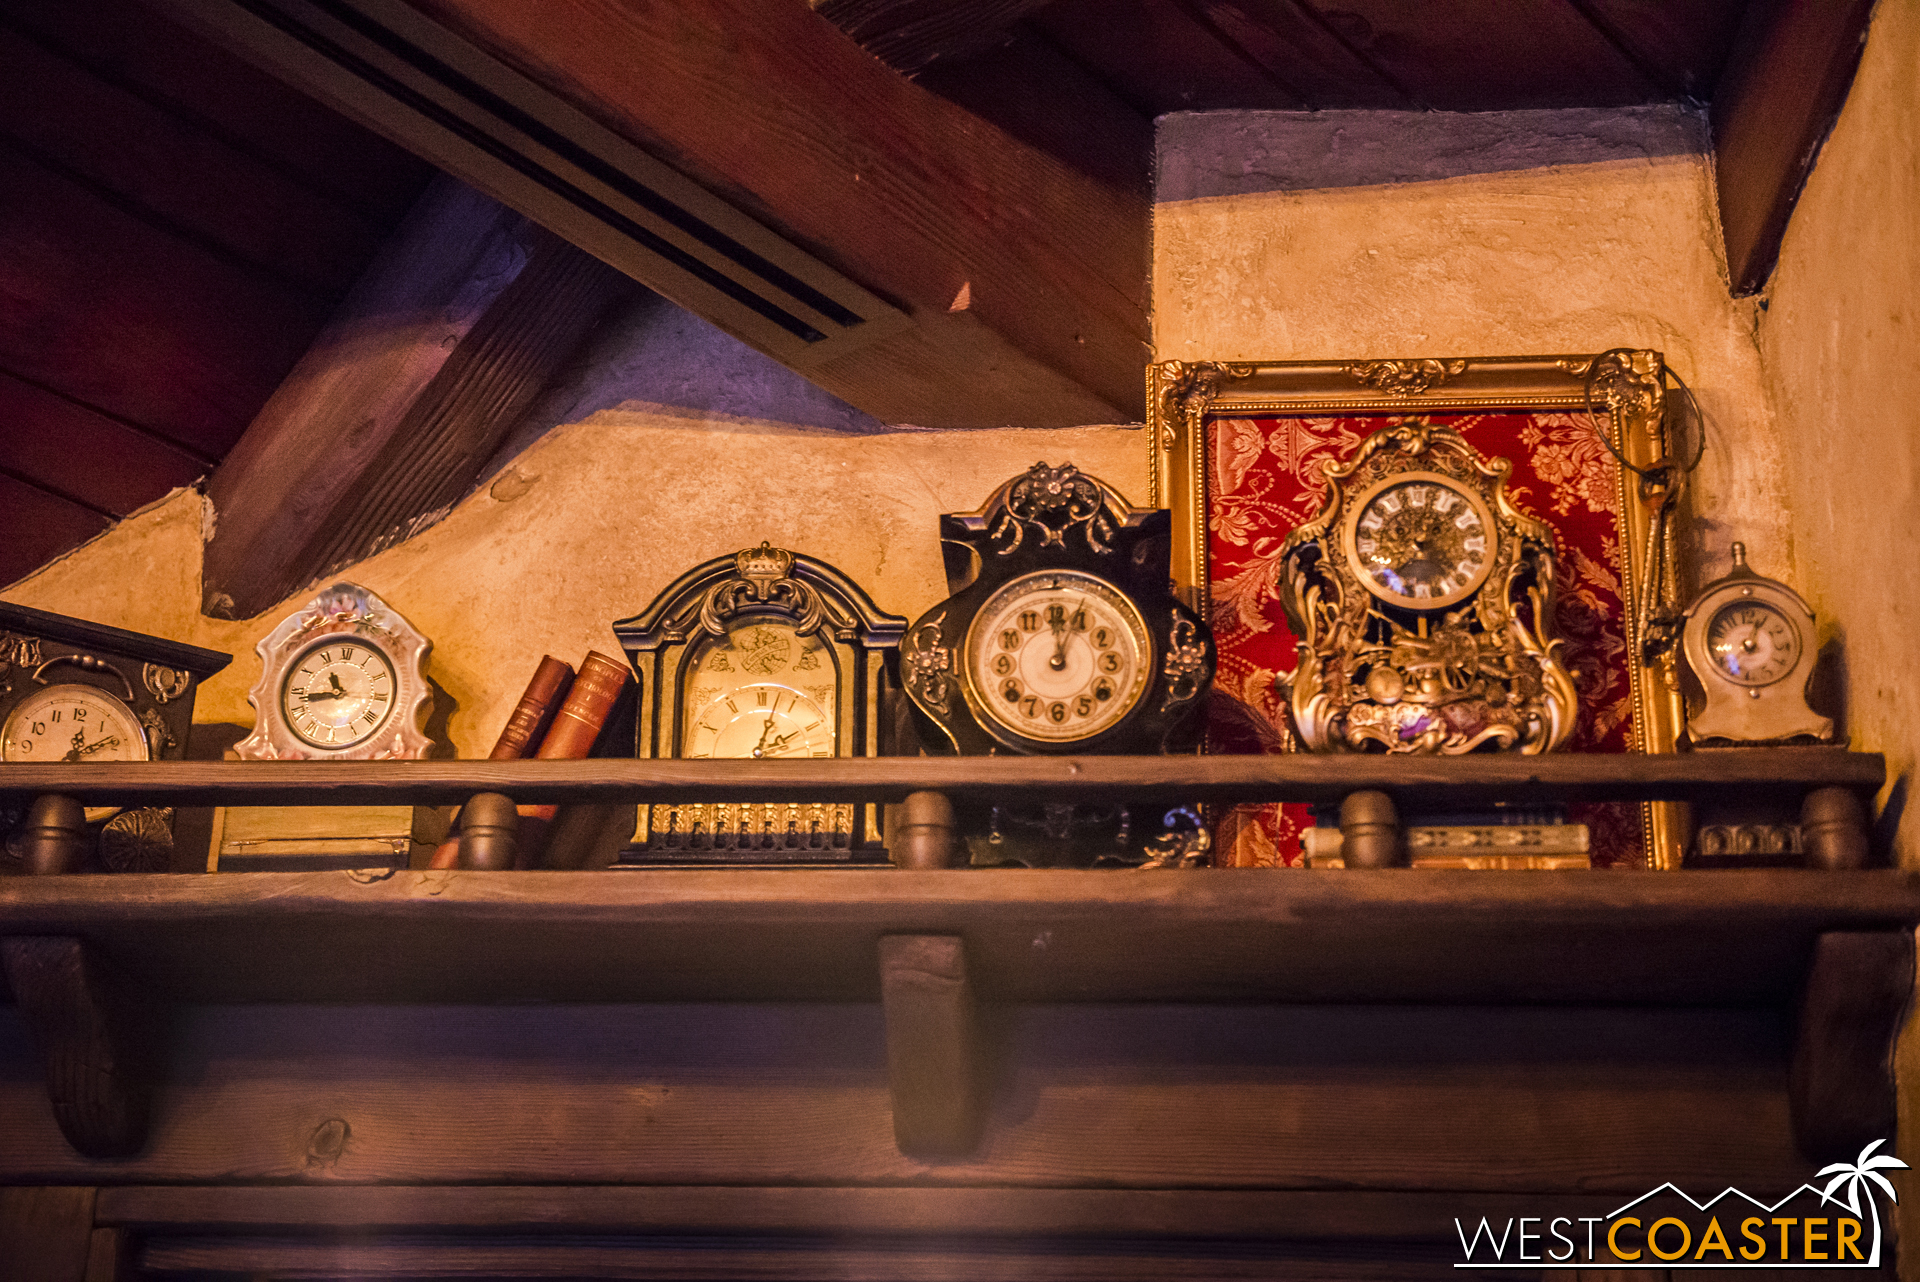 Cogsworth and friends on another shelf.